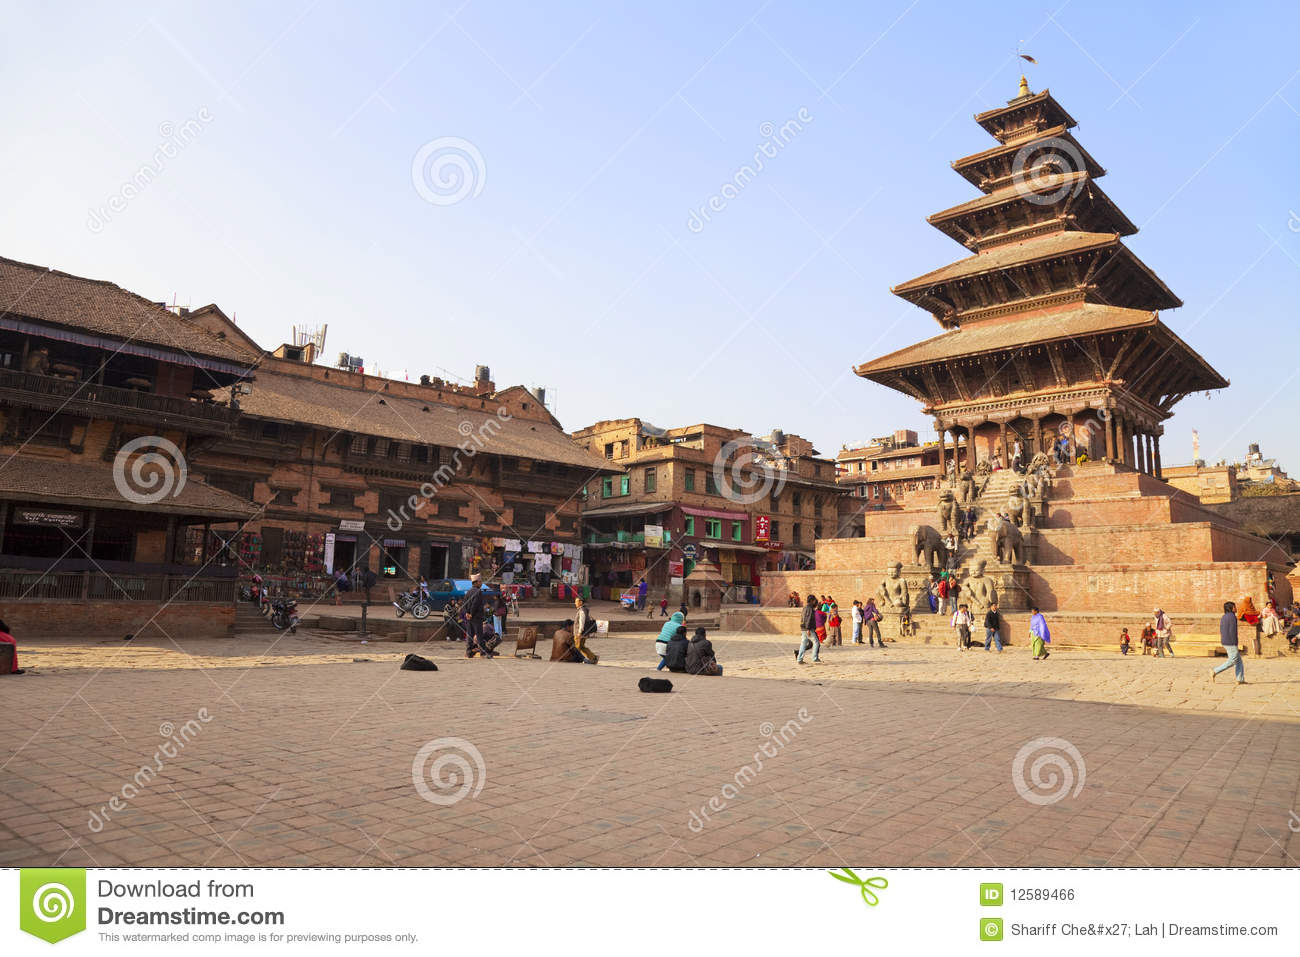 essay on bhaktapur durbar square Photo essay: the ancient town of bhaktapur, nepal share 8 tweet pin +1 2 8 shares  the 55 window palace in bhaktapur's durbar square is decorated with intricate carvings read now.